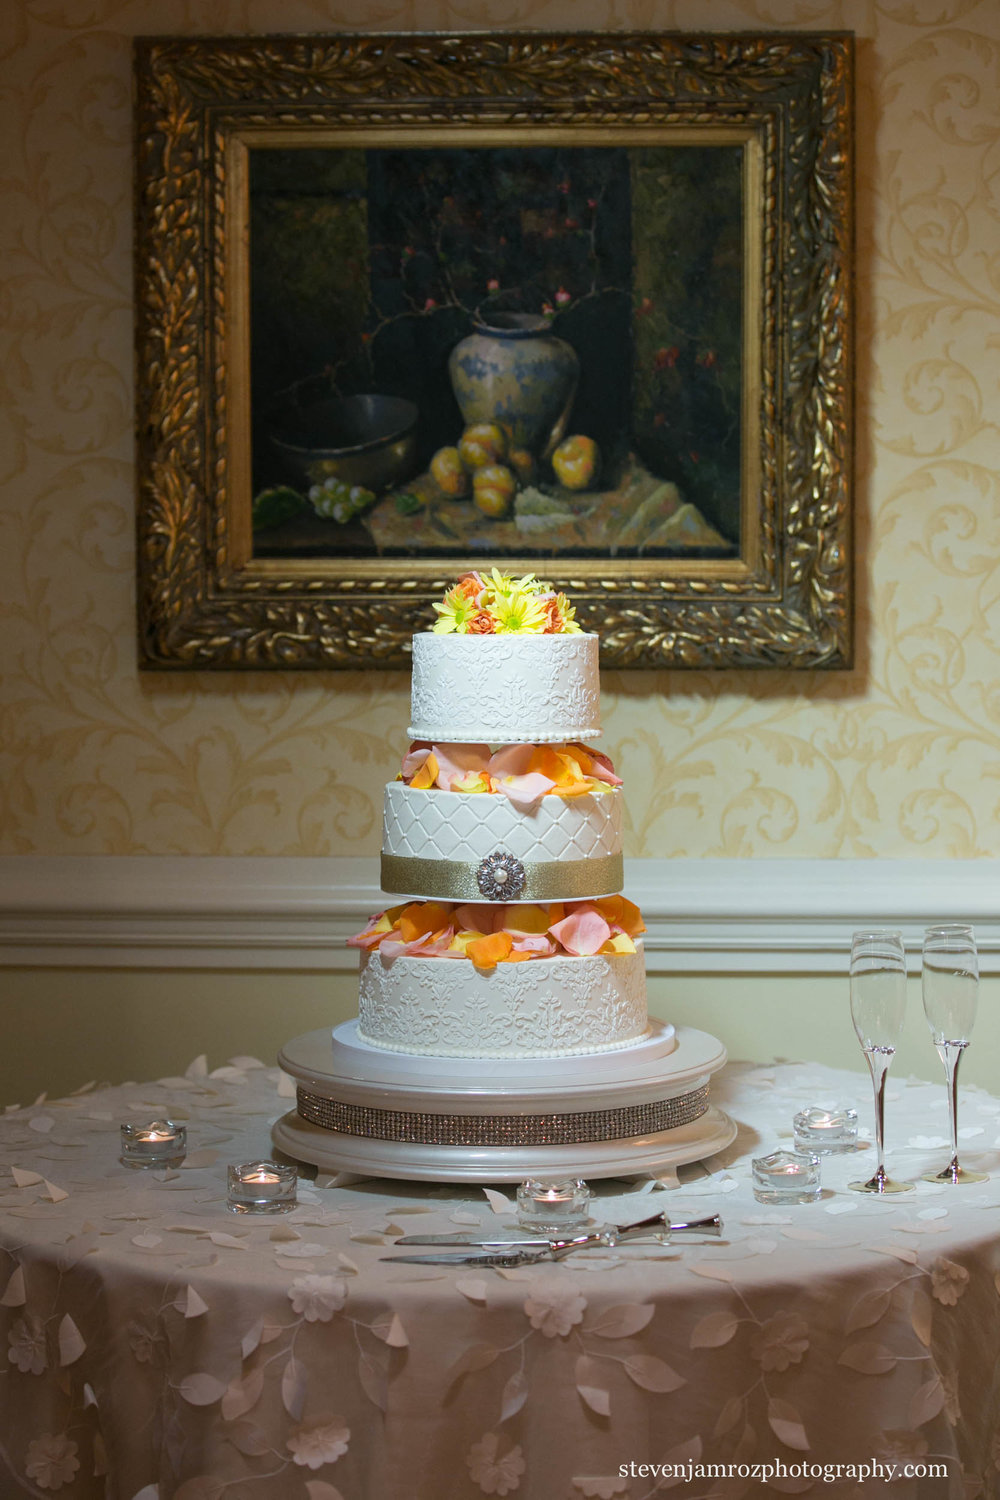 steven-jamroz-photography-raleigh-country-club-wedding-cake-0575.jpg